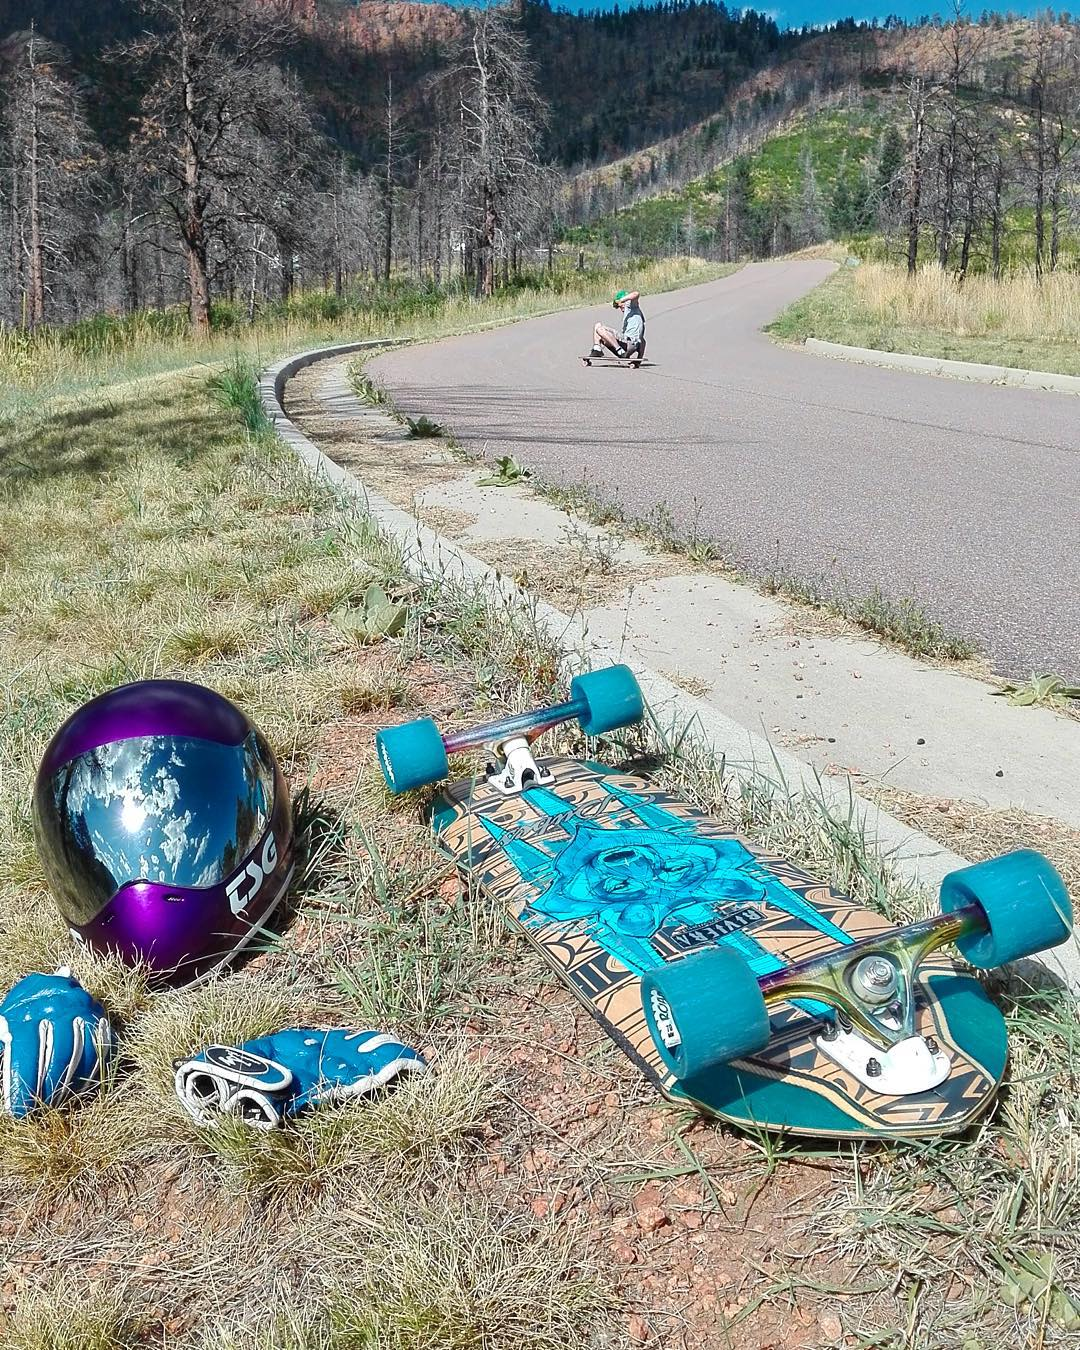 Visions from colorful Colorado - @ajschu dusting some City Slashers in the wild while @palaxa takes it all in.